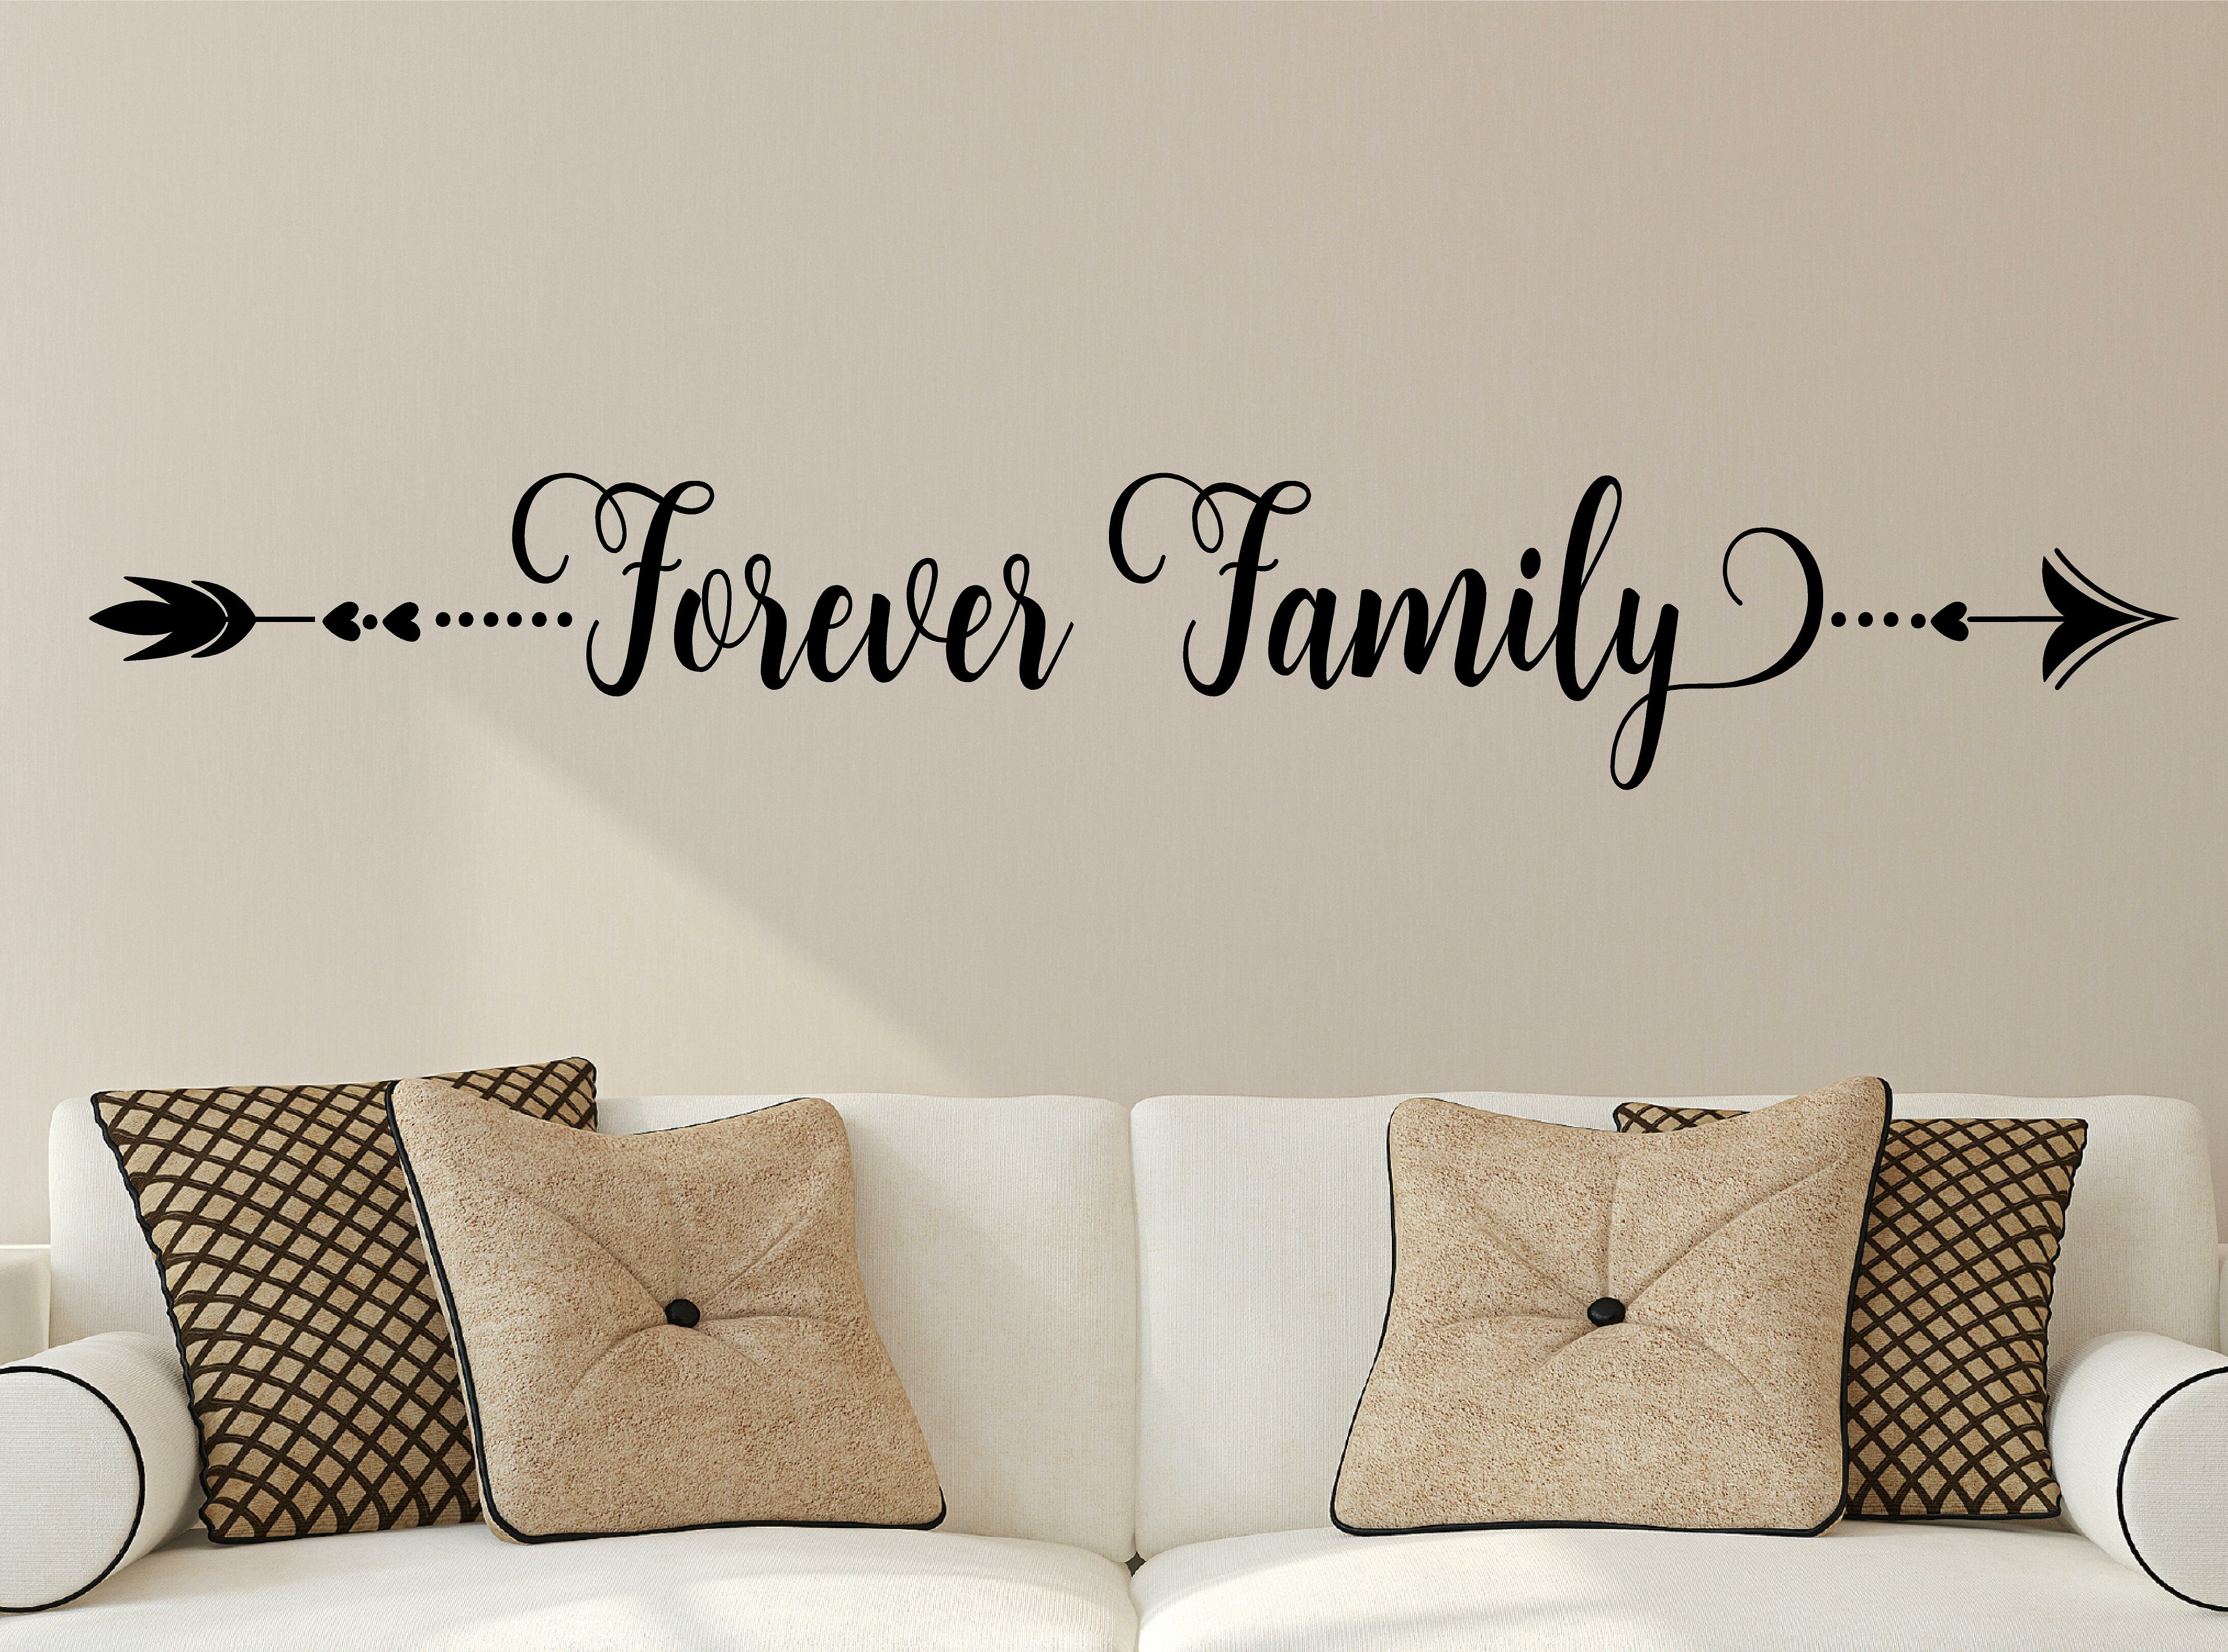 Welcome Scroll Vinyl Decal Wall Sticker Words Lettering Quote Home Entry Decor